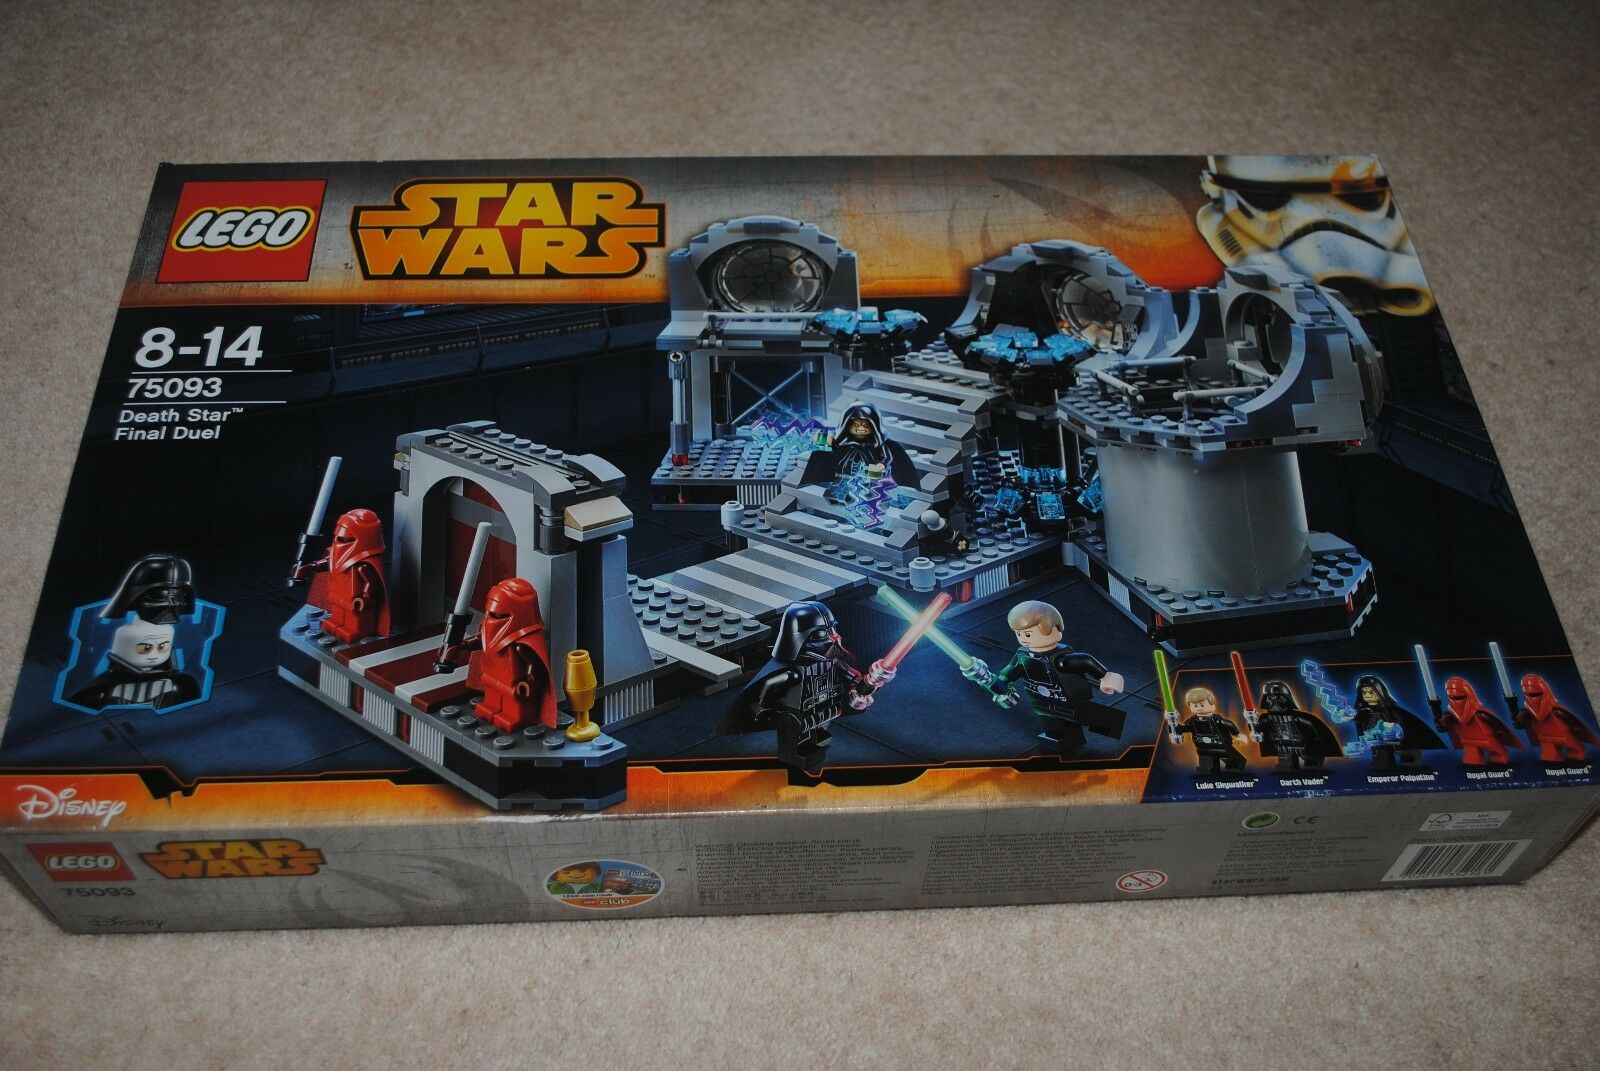 Lego Star Wars Death Star Final Duel 75093 RETIRED SEALED BRAND NEW SEALED BOX